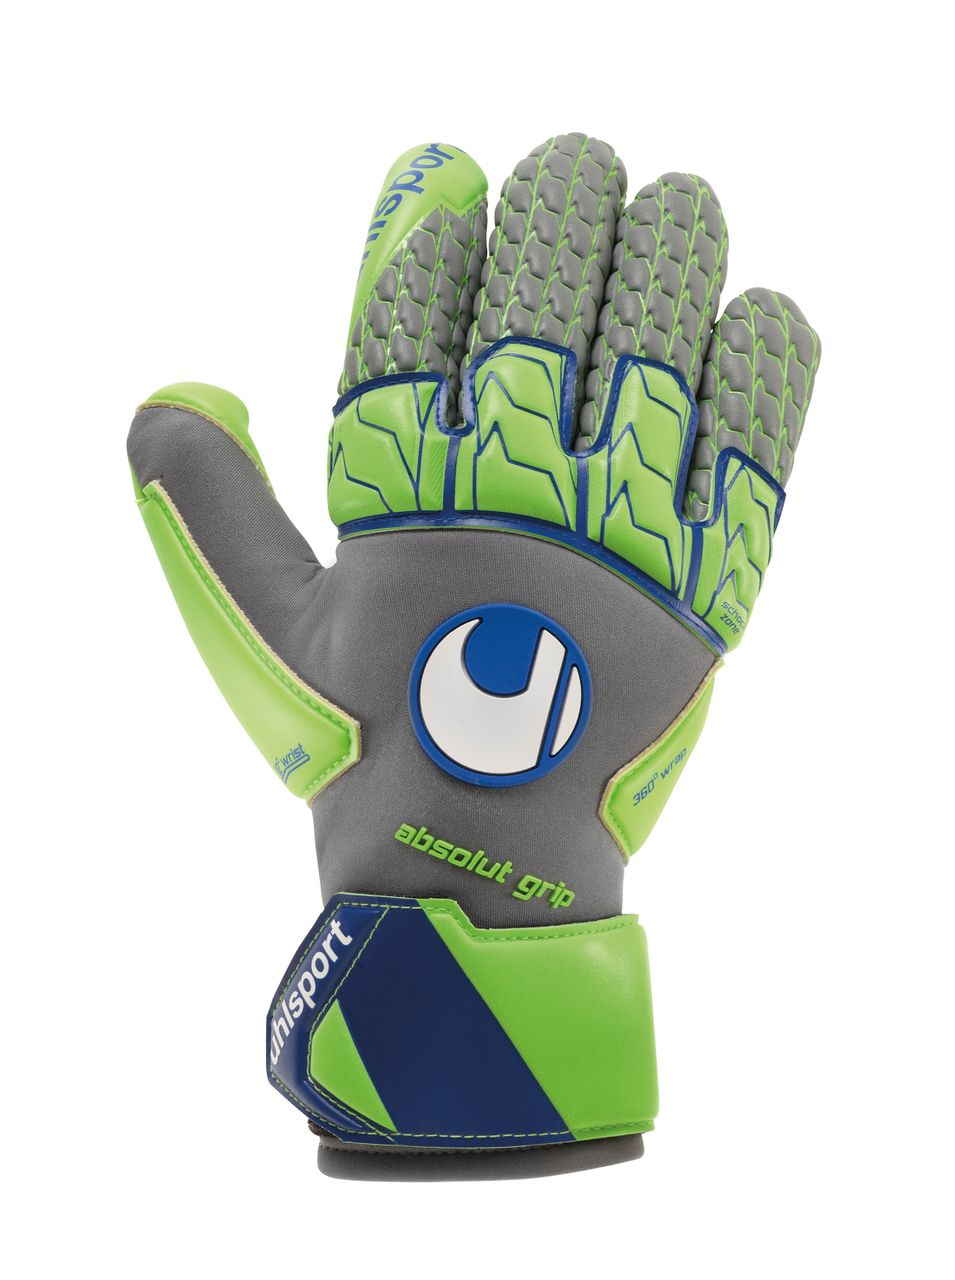 Uhlsport TENSIONGREEN ABSOLUTGRIP REFLEX